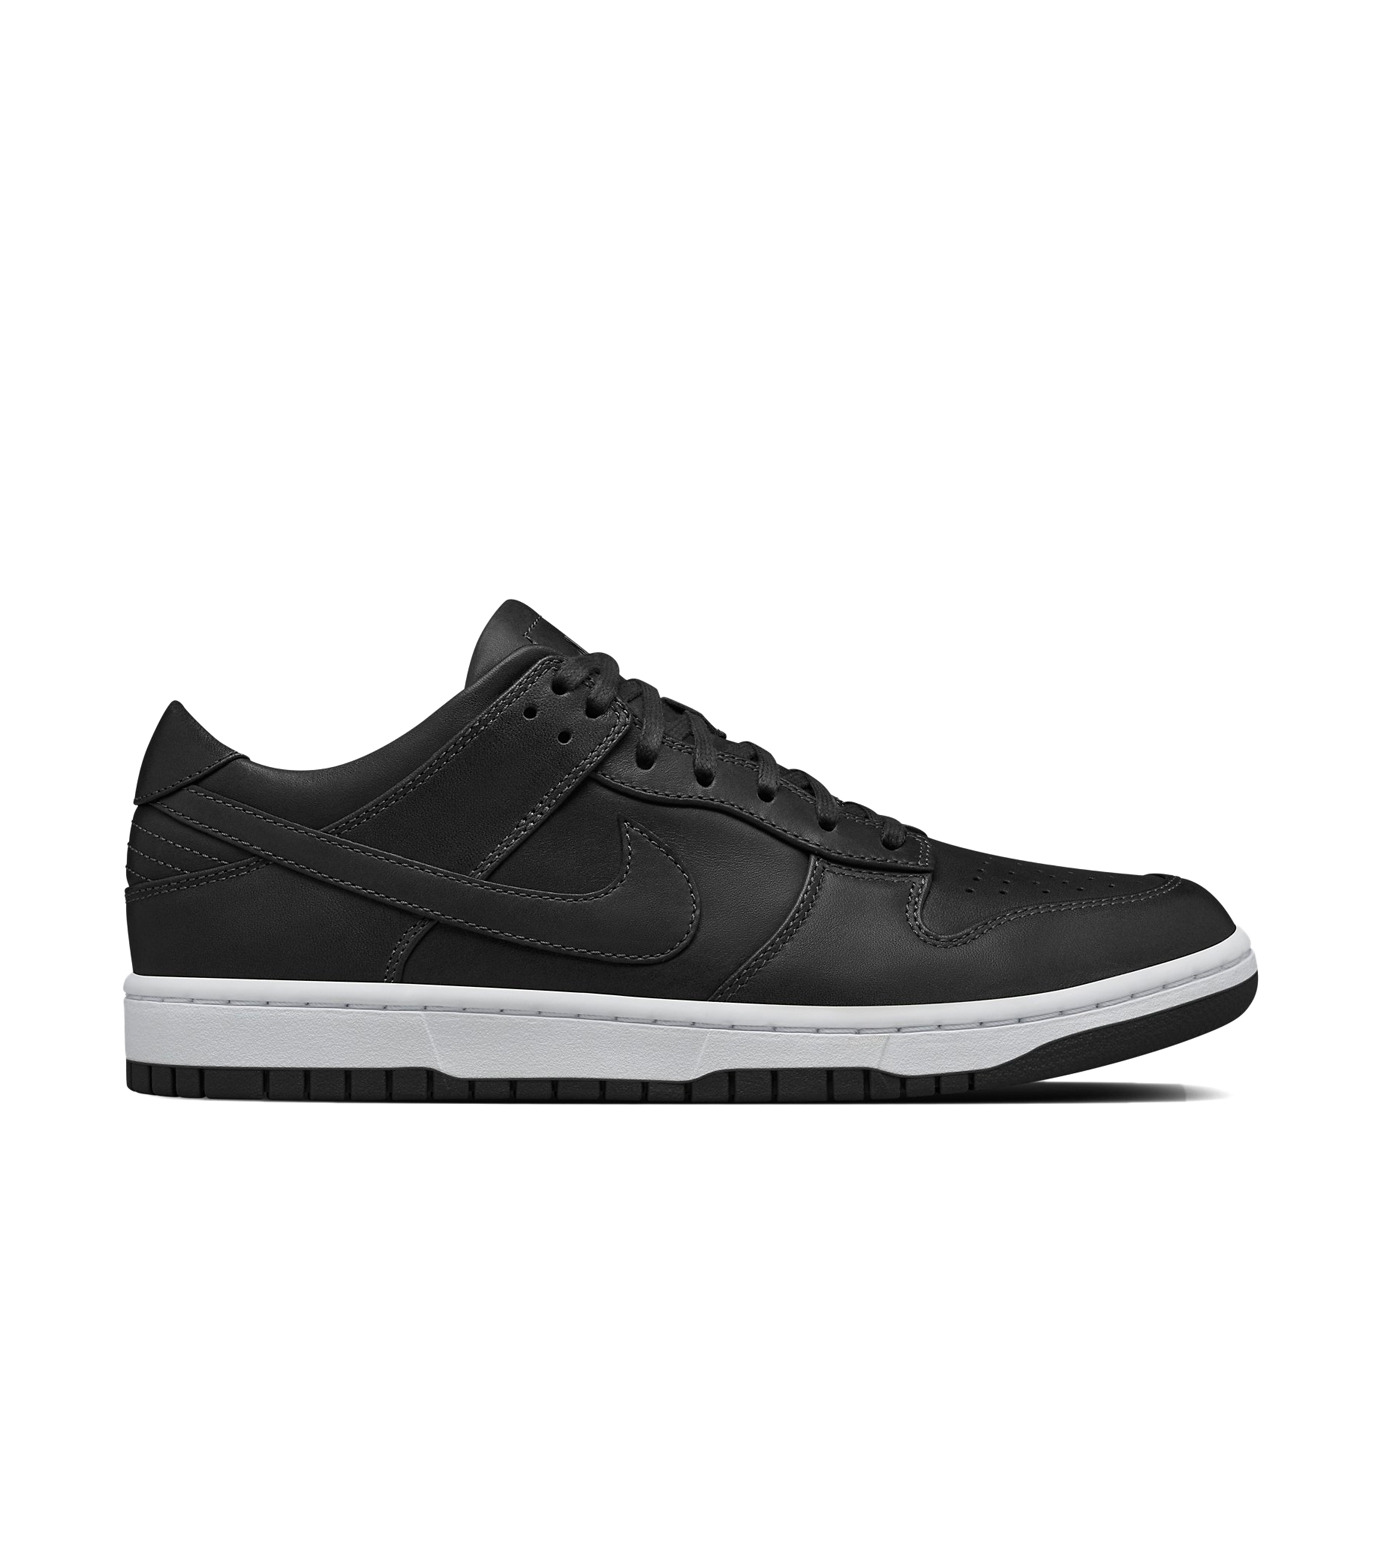 NIKE(ナイキ)のLAB DUNK LUX LOW-BLACK(シューズ/shoes)-857587-001-13 拡大詳細画像1